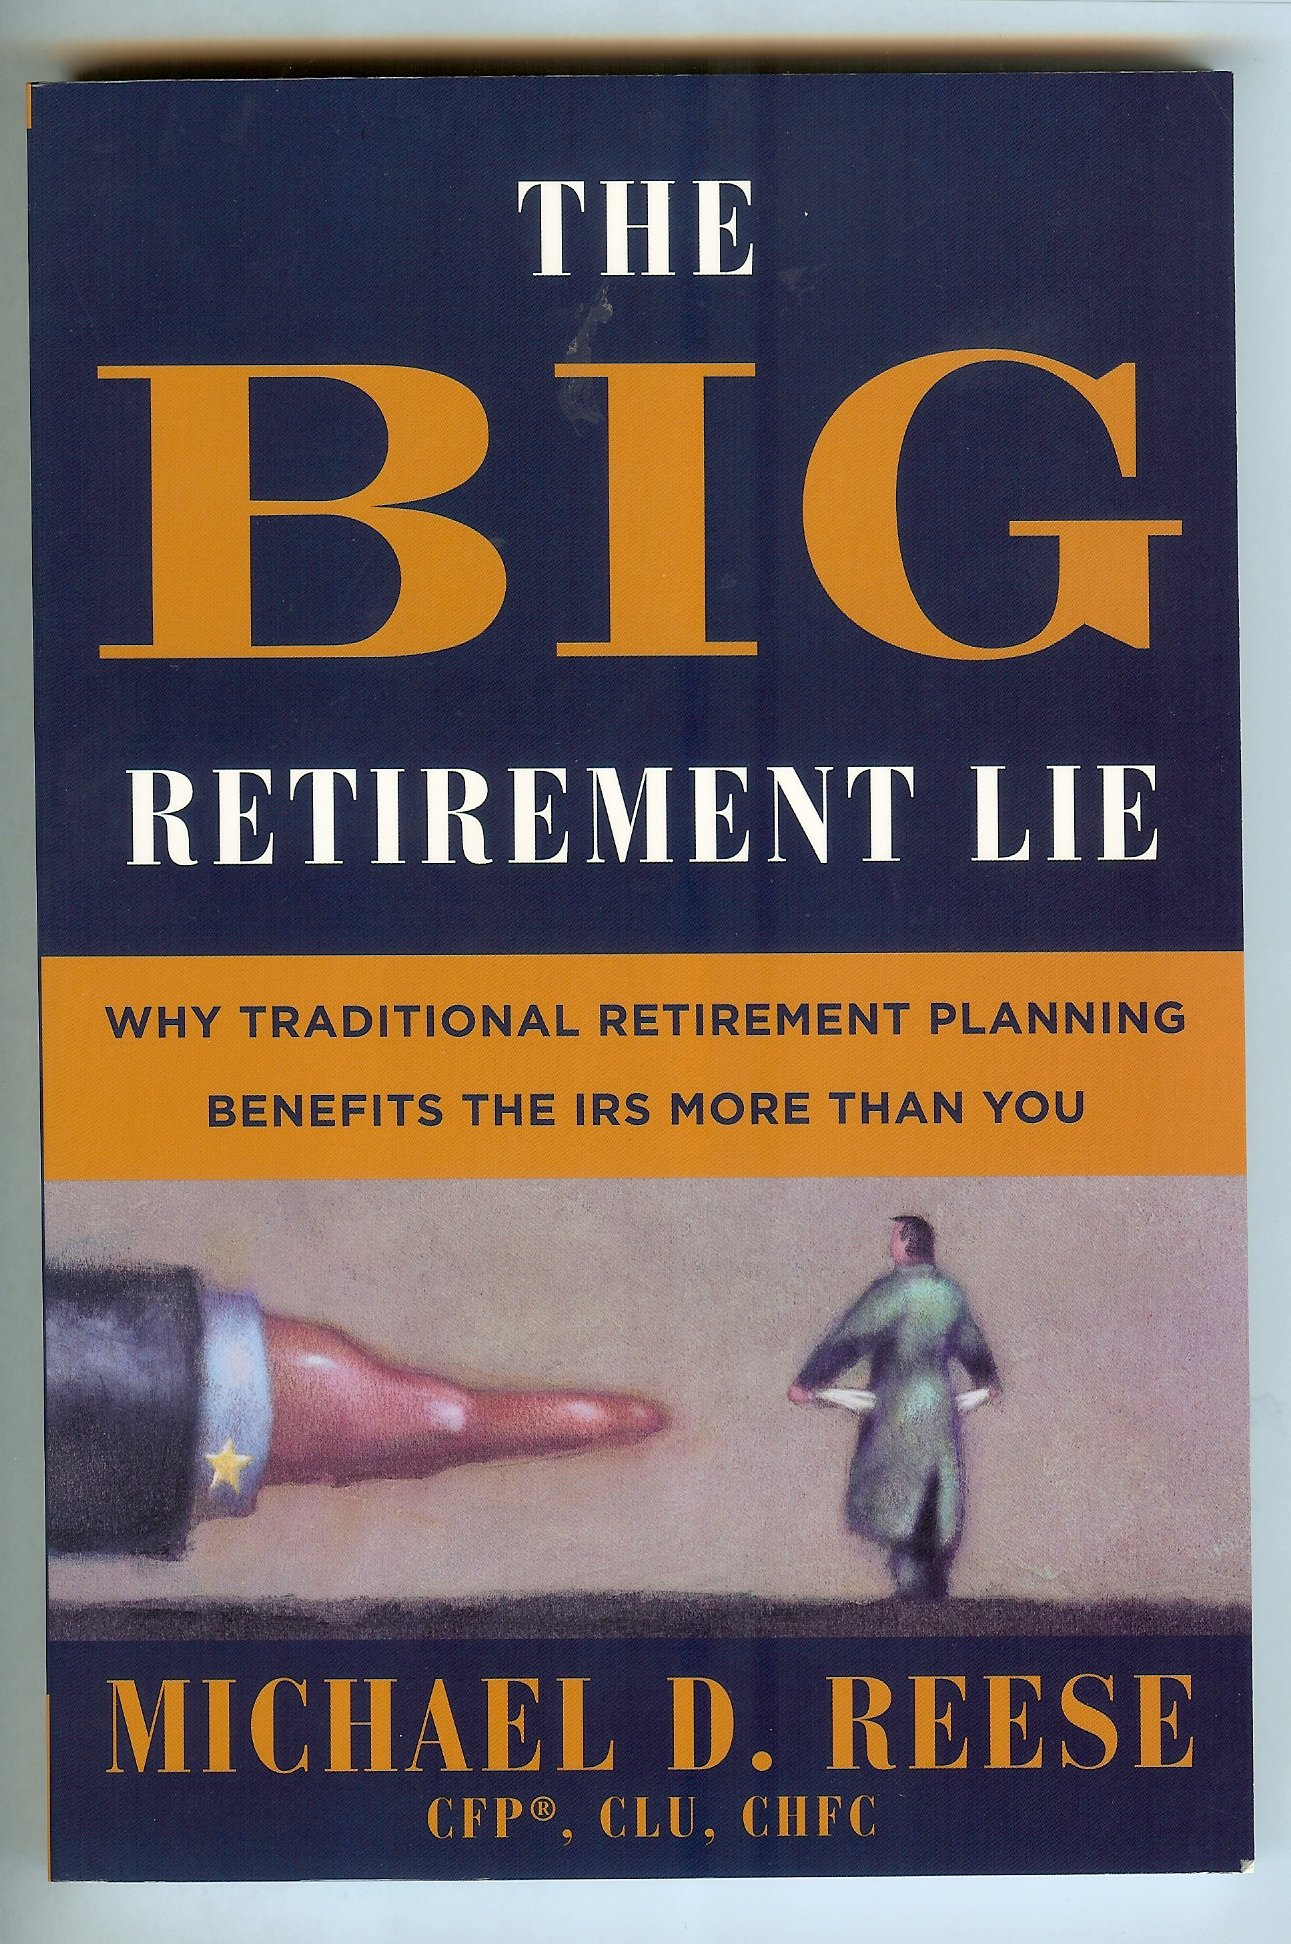 The Big Retirement Lie: Why Traditional Retirement Planning Benefits the IRS More Than You